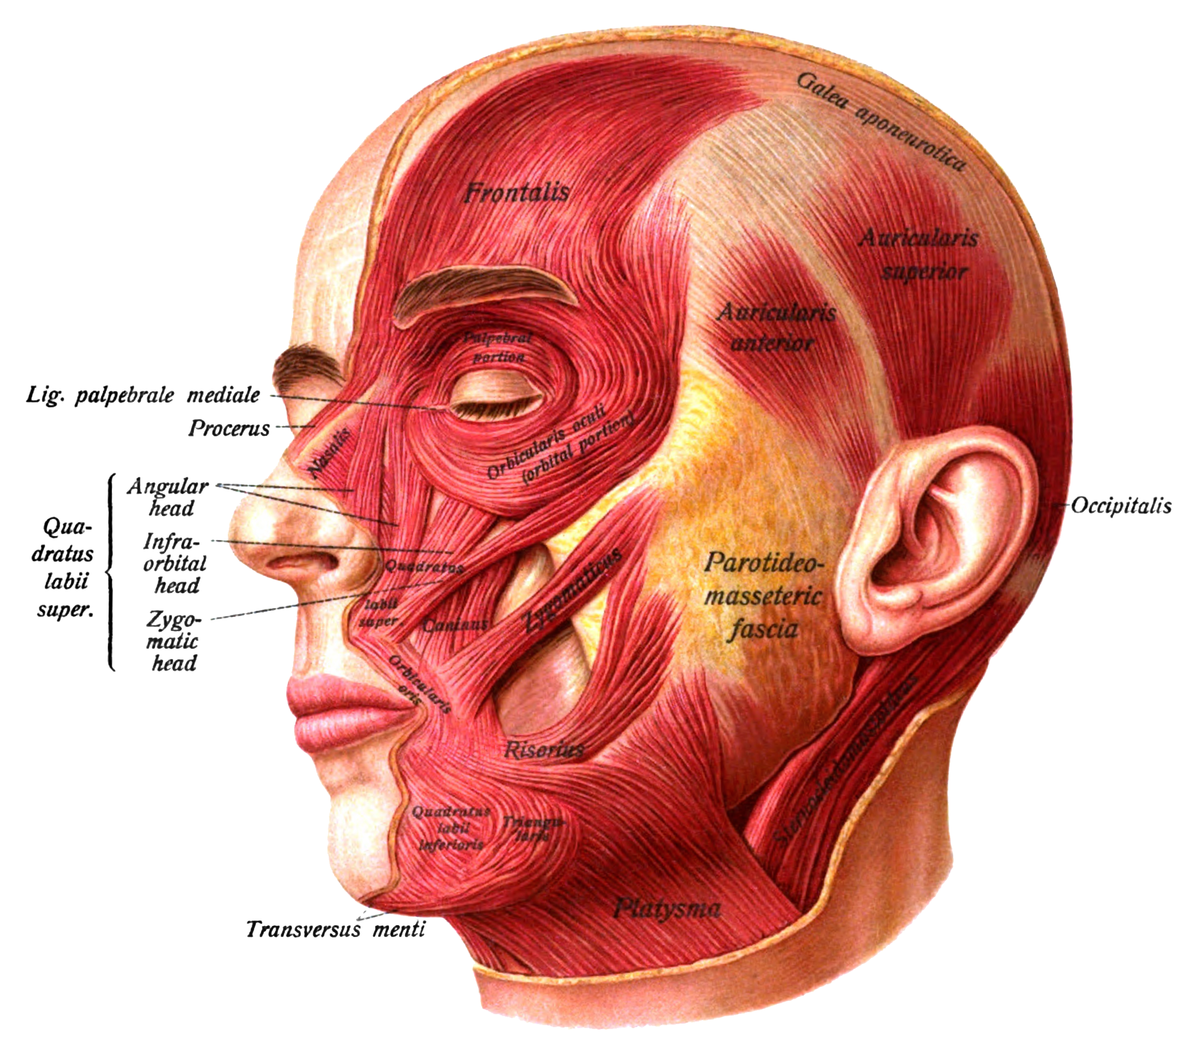 Inside of face diagram